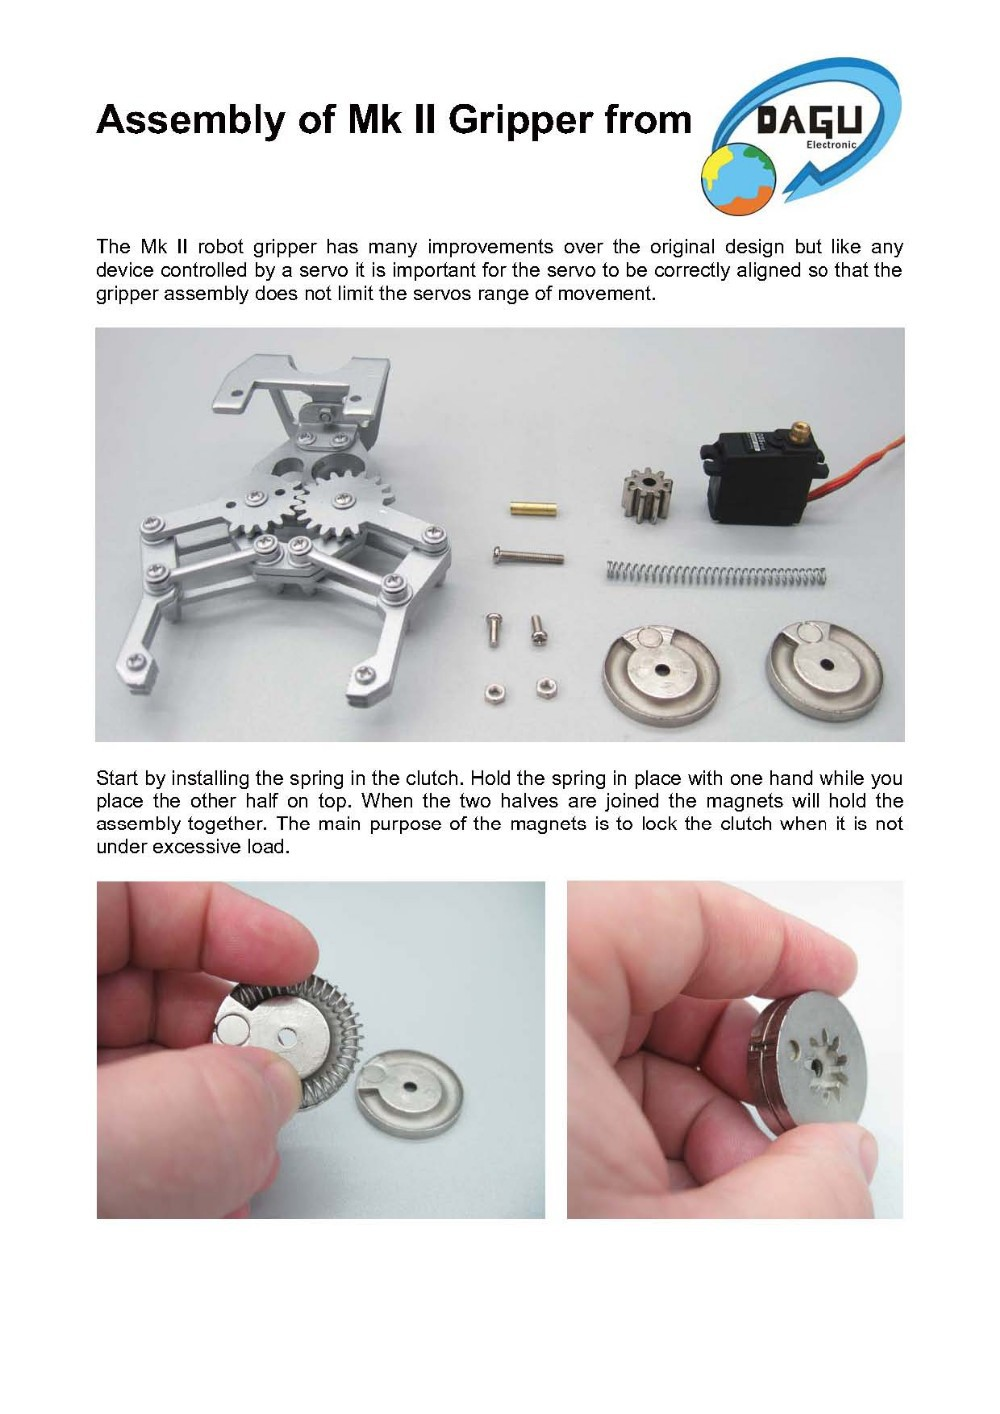 Assembly Instructions for Mk II Gripper1